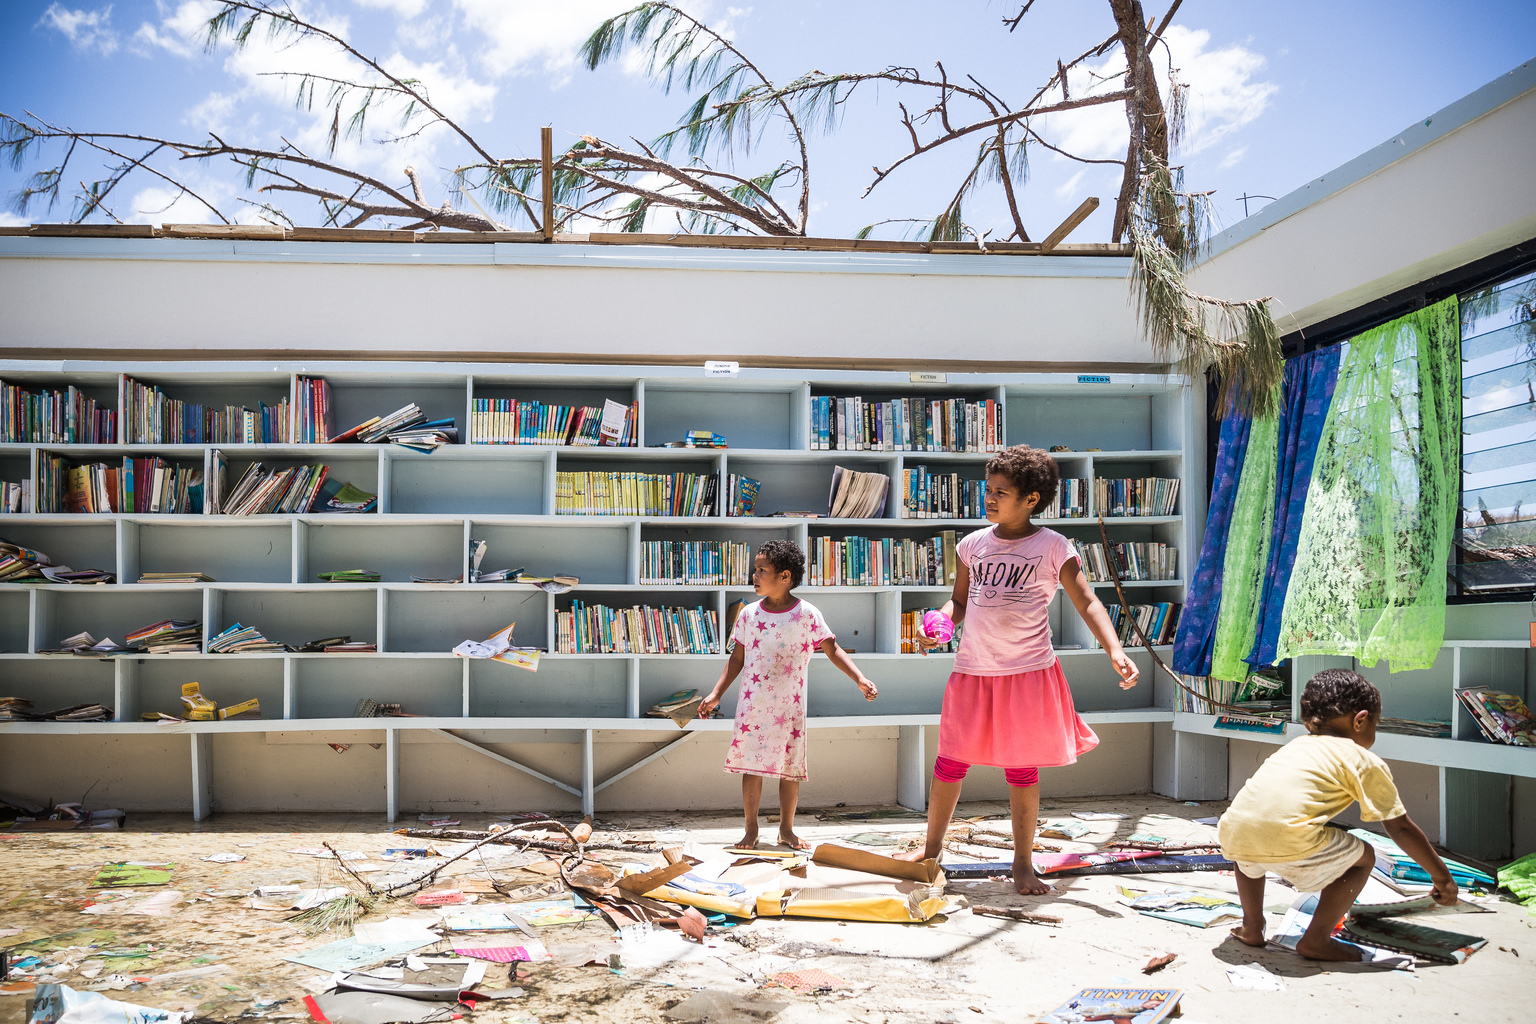 After Cyclone Winston, Ethan travelled to Fiji to cover the damage done to Fijian communities throughout the cyclone (© UNICEF/UN012272/Sokhin)